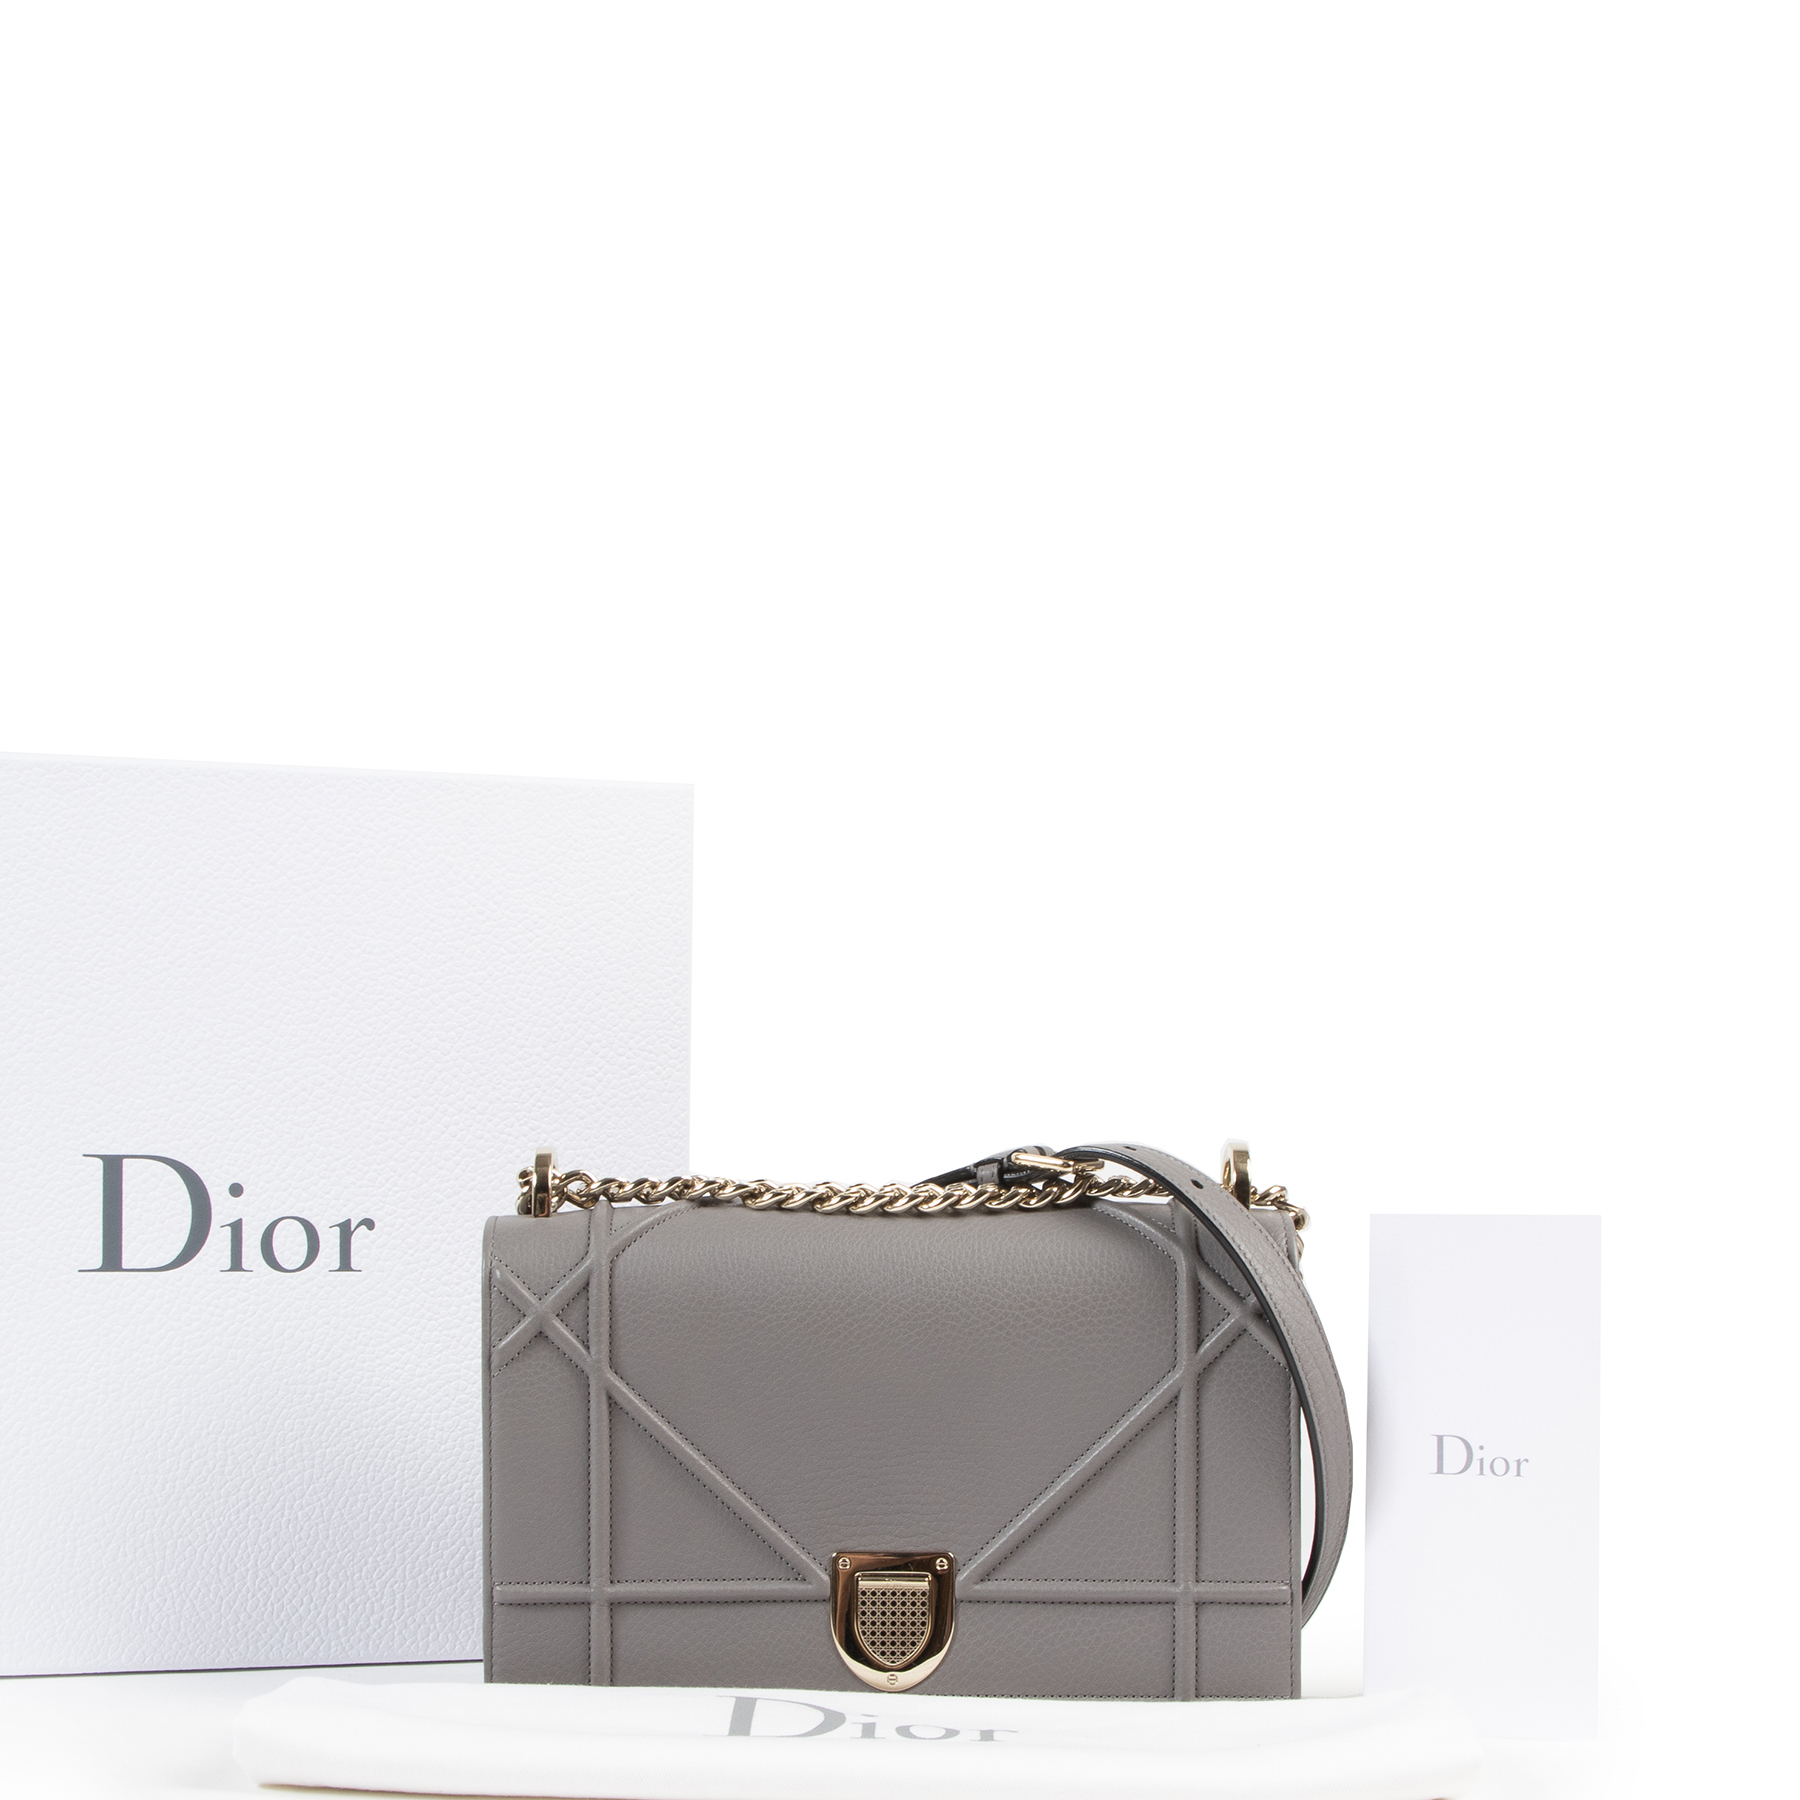 Authentic secondhand Dior designer bags luxury vintage webshop fashion safe secure online shopping designer brands